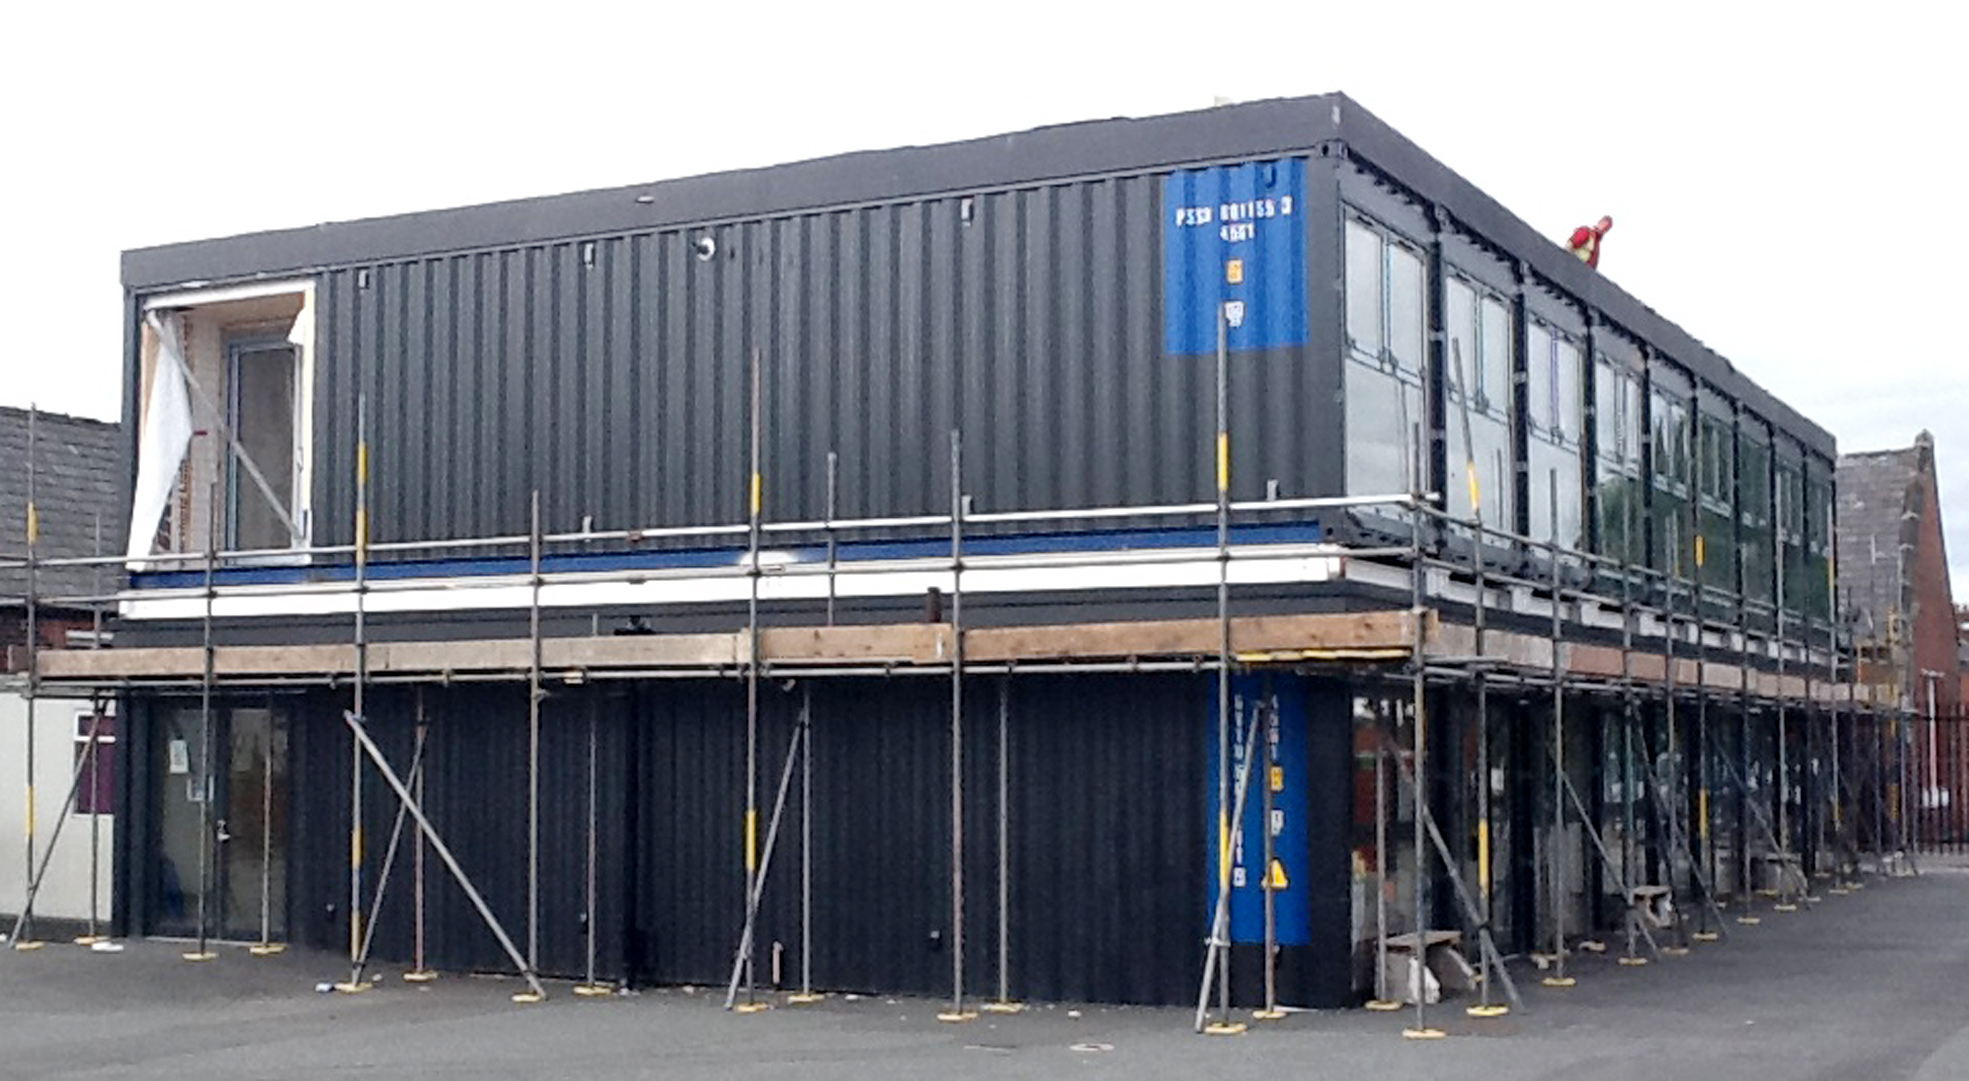 Primary school gets new classrooms made from shipping containers from the bolton news - Vissershok primary school shipping container classroom ...